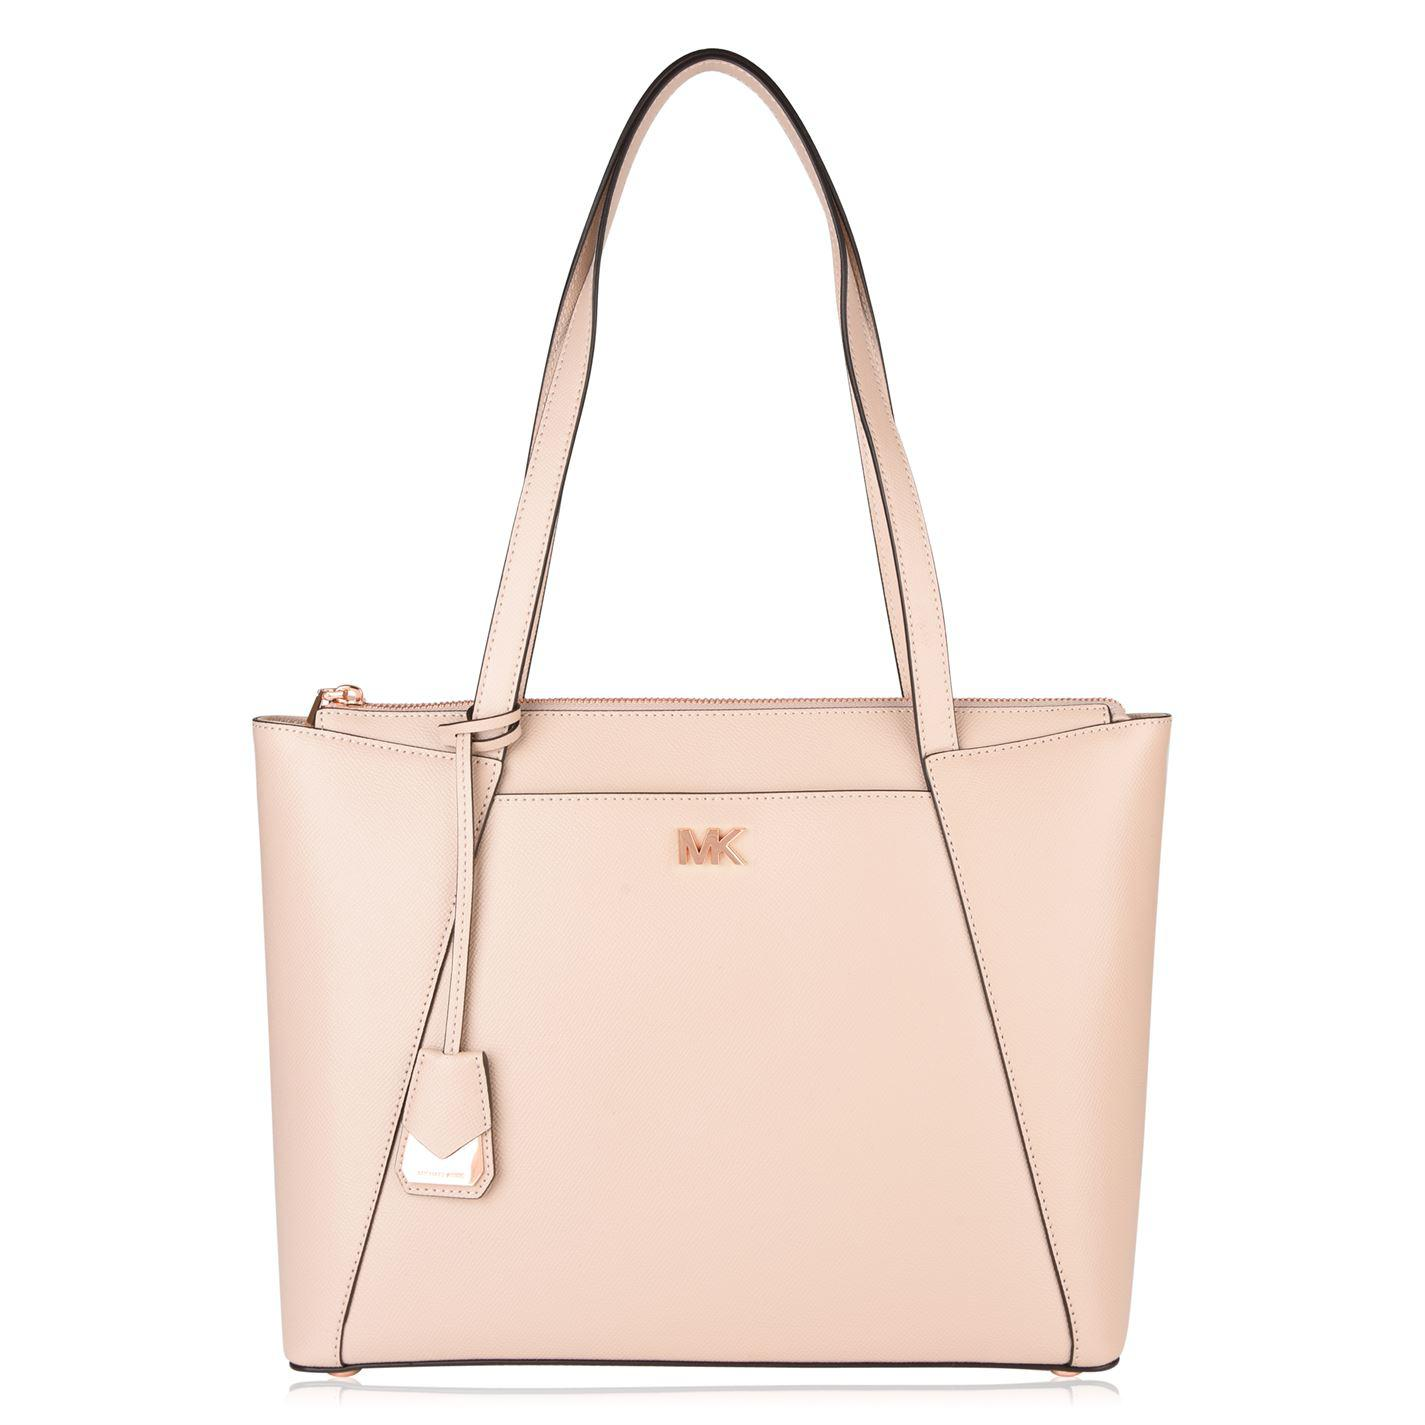 65801edcacda MICHAEL Michael Kors Maddie Medium Tote Bag in Pink - Lyst